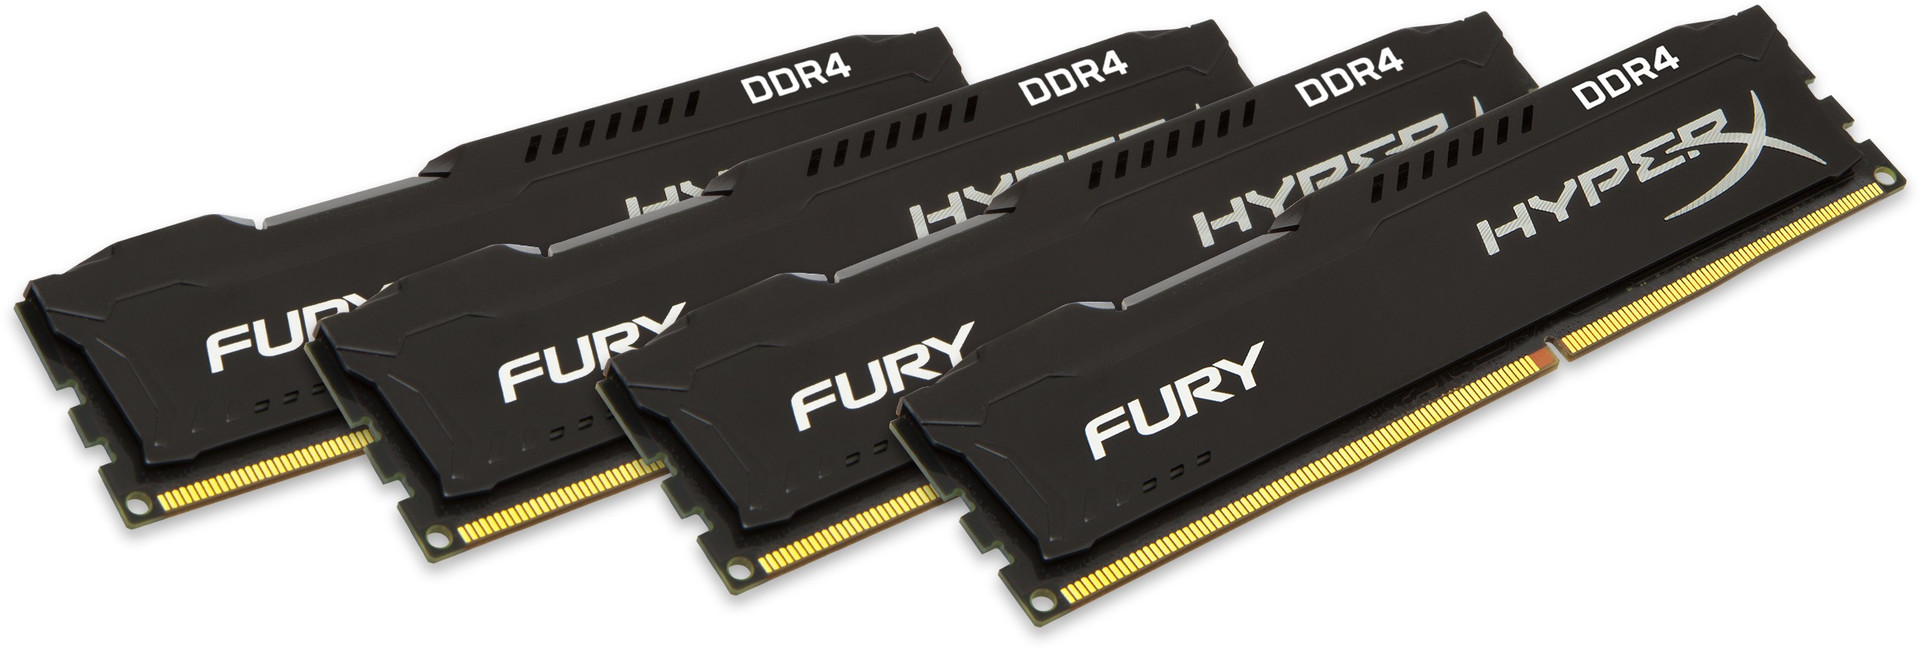 Kingston HyperX FURY Memory Black 32GB DDR4 2133MHz Kit 4x8GB